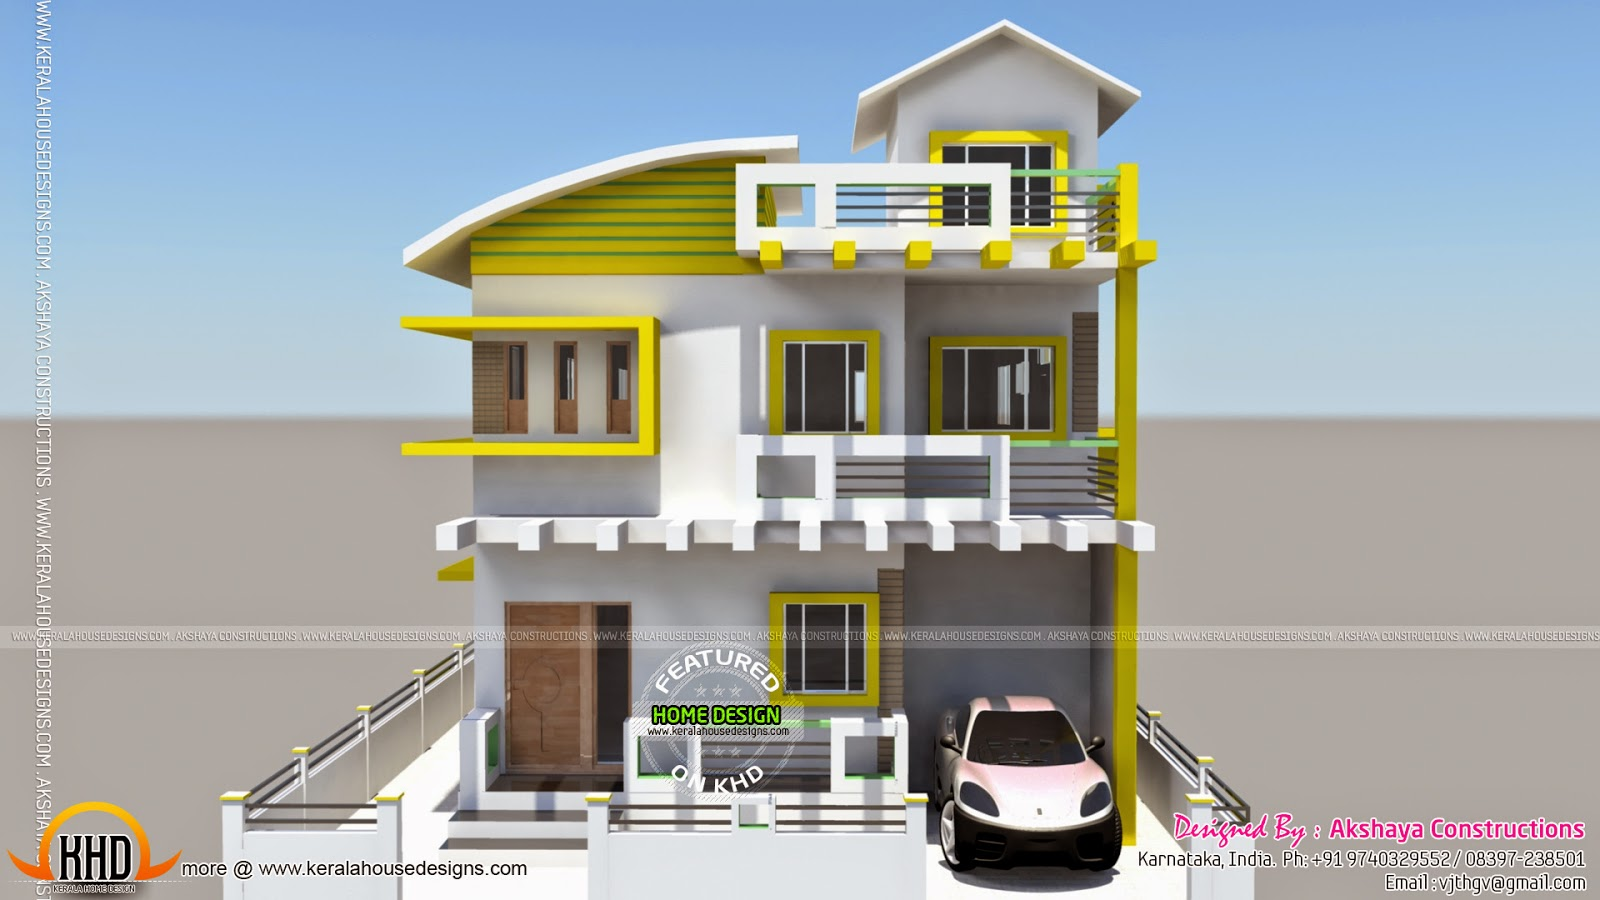 Karnataka home design kerala home design and floor plans for Home plans and designs